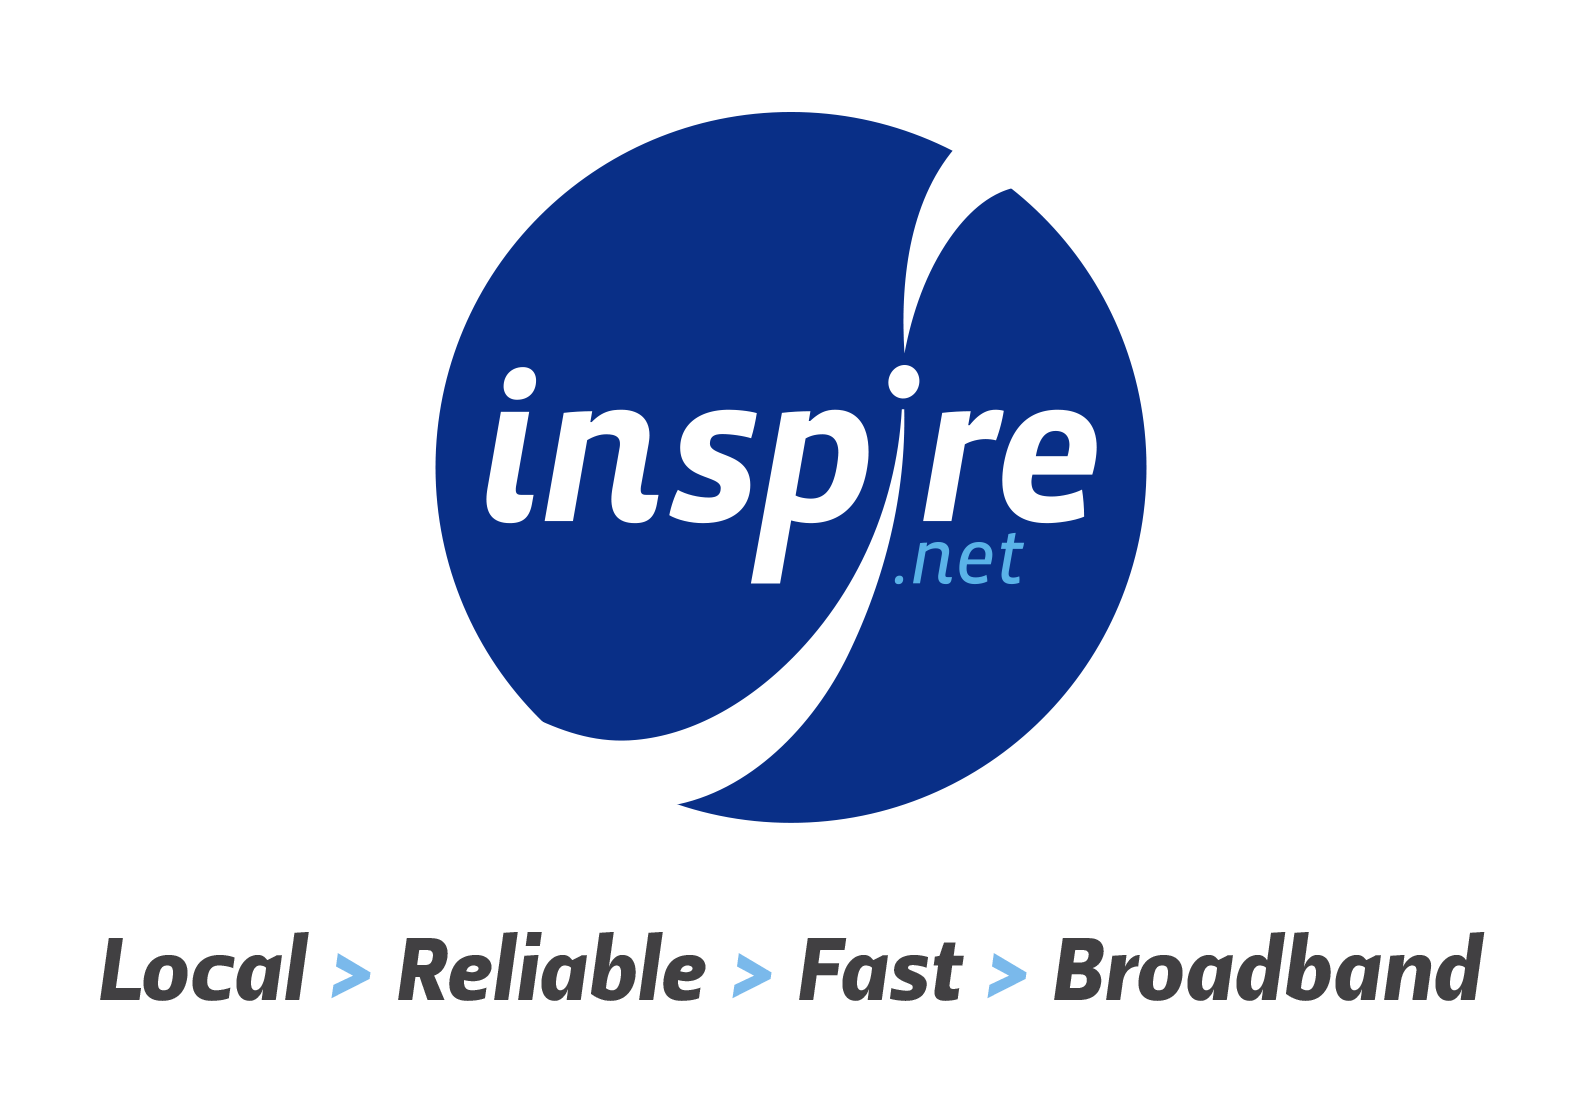 Inspire Logo with Tagline